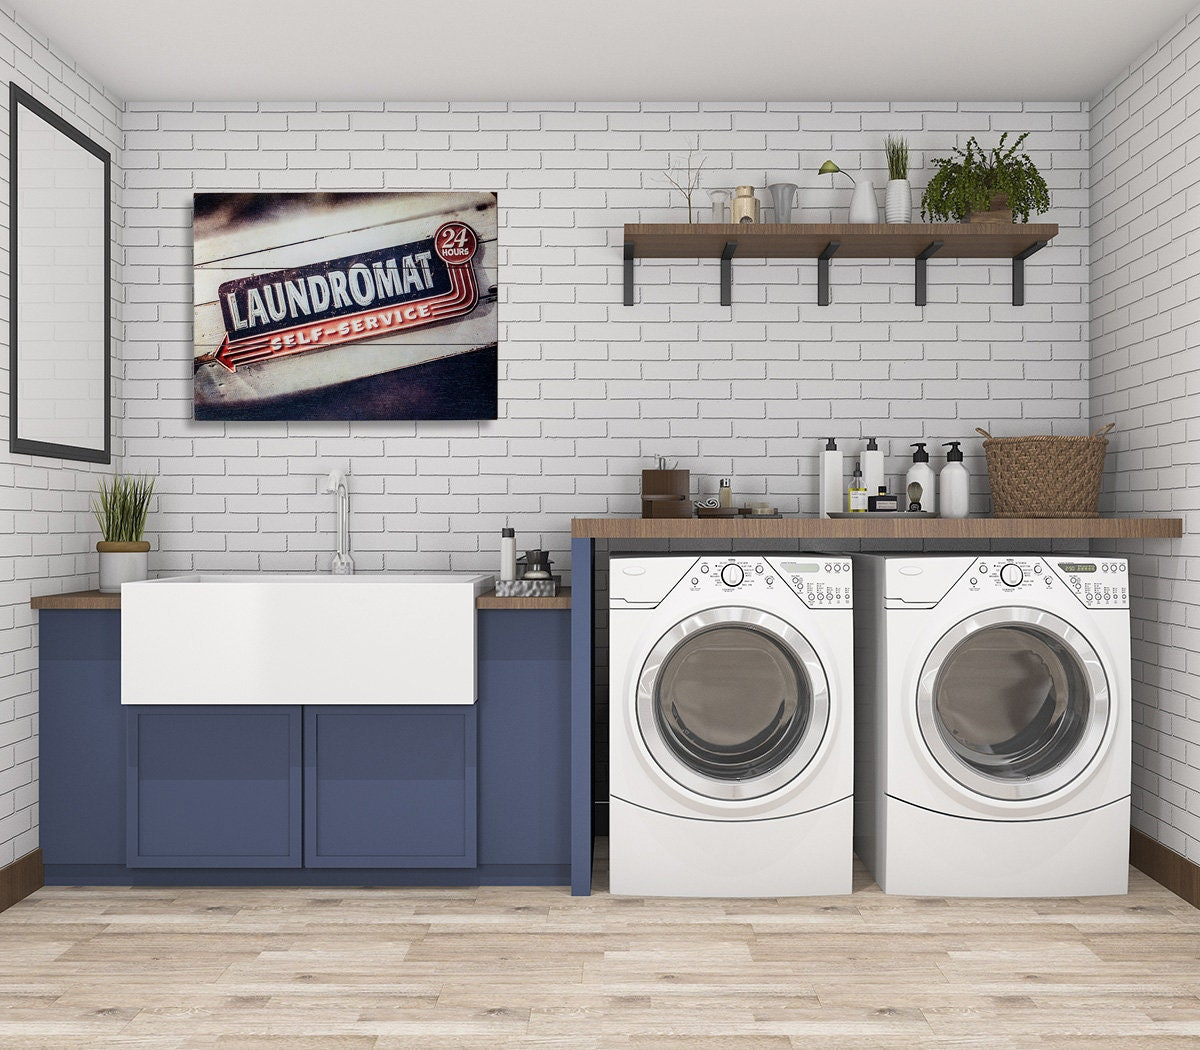 Laundry Room Decor Laundry Room Sign Wood Signs For Laundry Room Retro Laundromat Rustic Laundry Room Laundry Sign Wood Sign